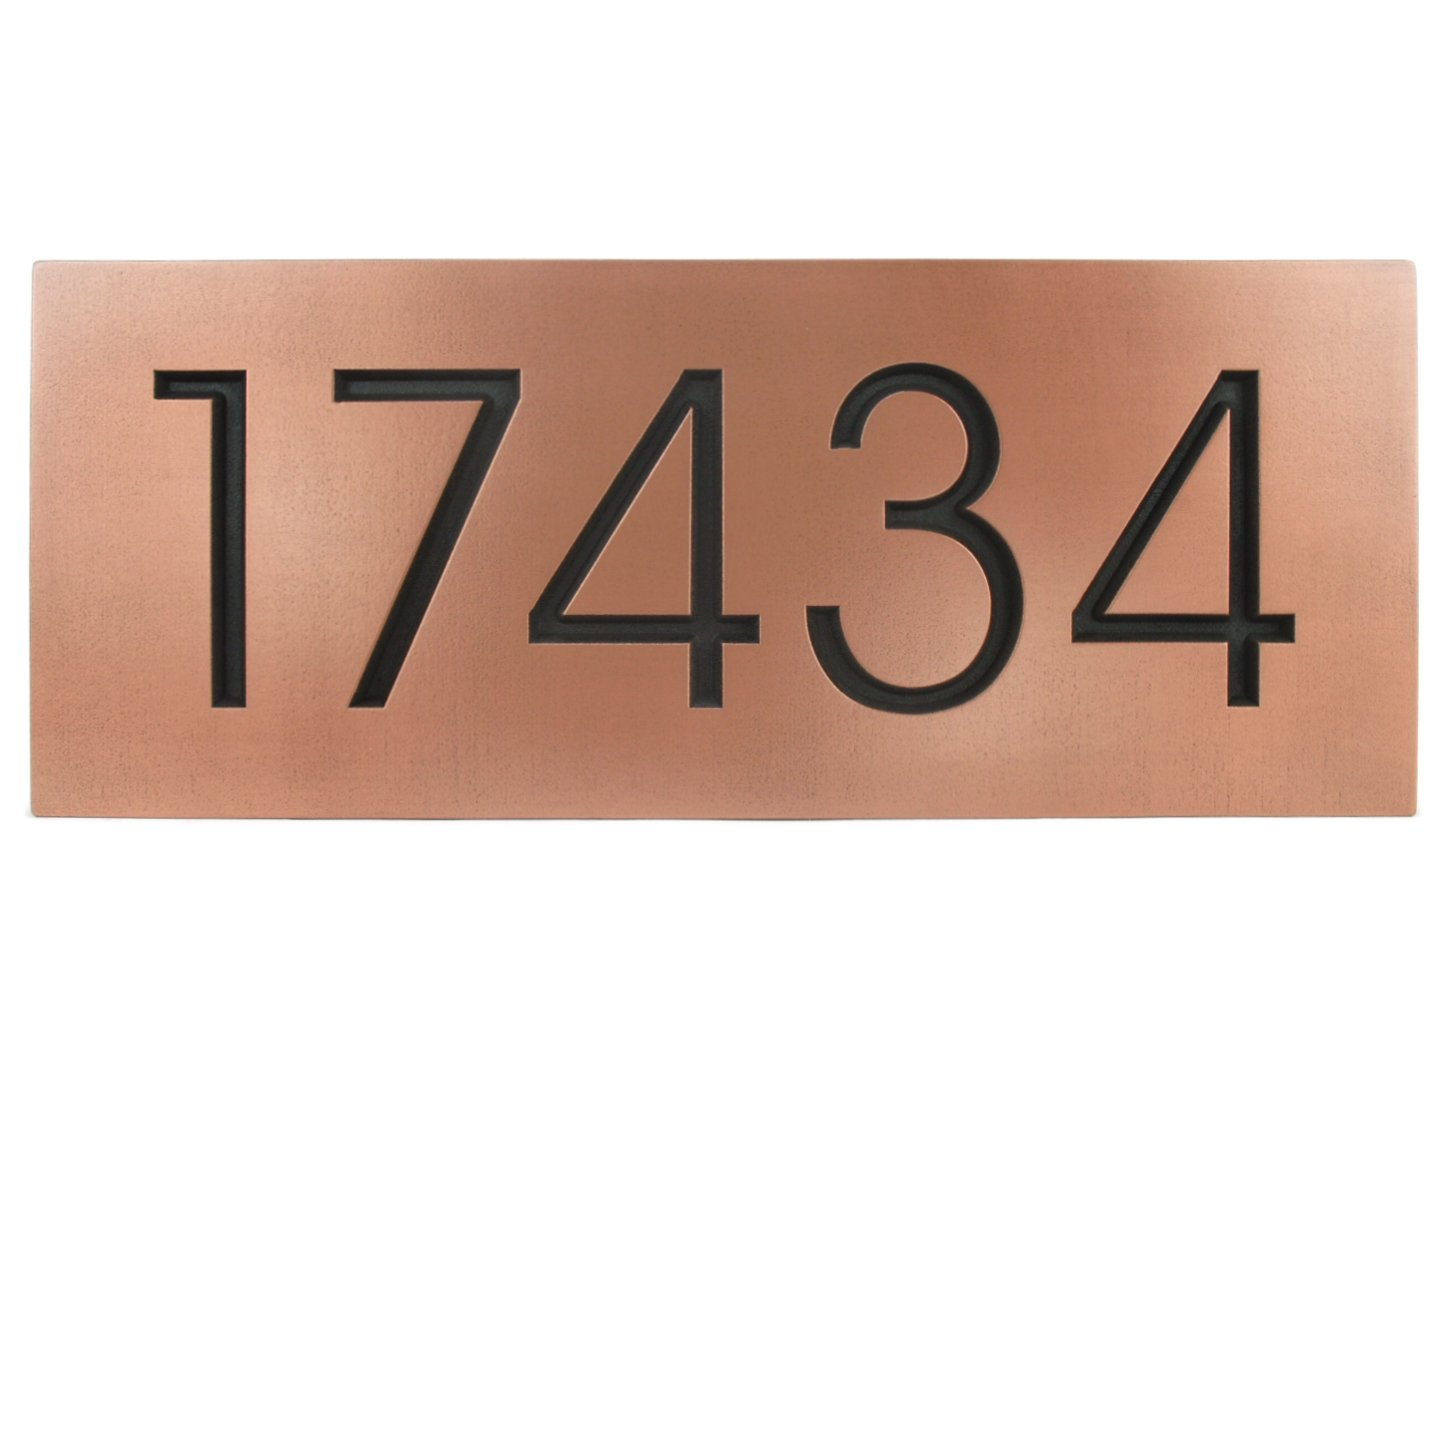 Modern Advantage Home Numbers for 5 or 6 Numbers 20x8 - Recessed Copper Patina Coated